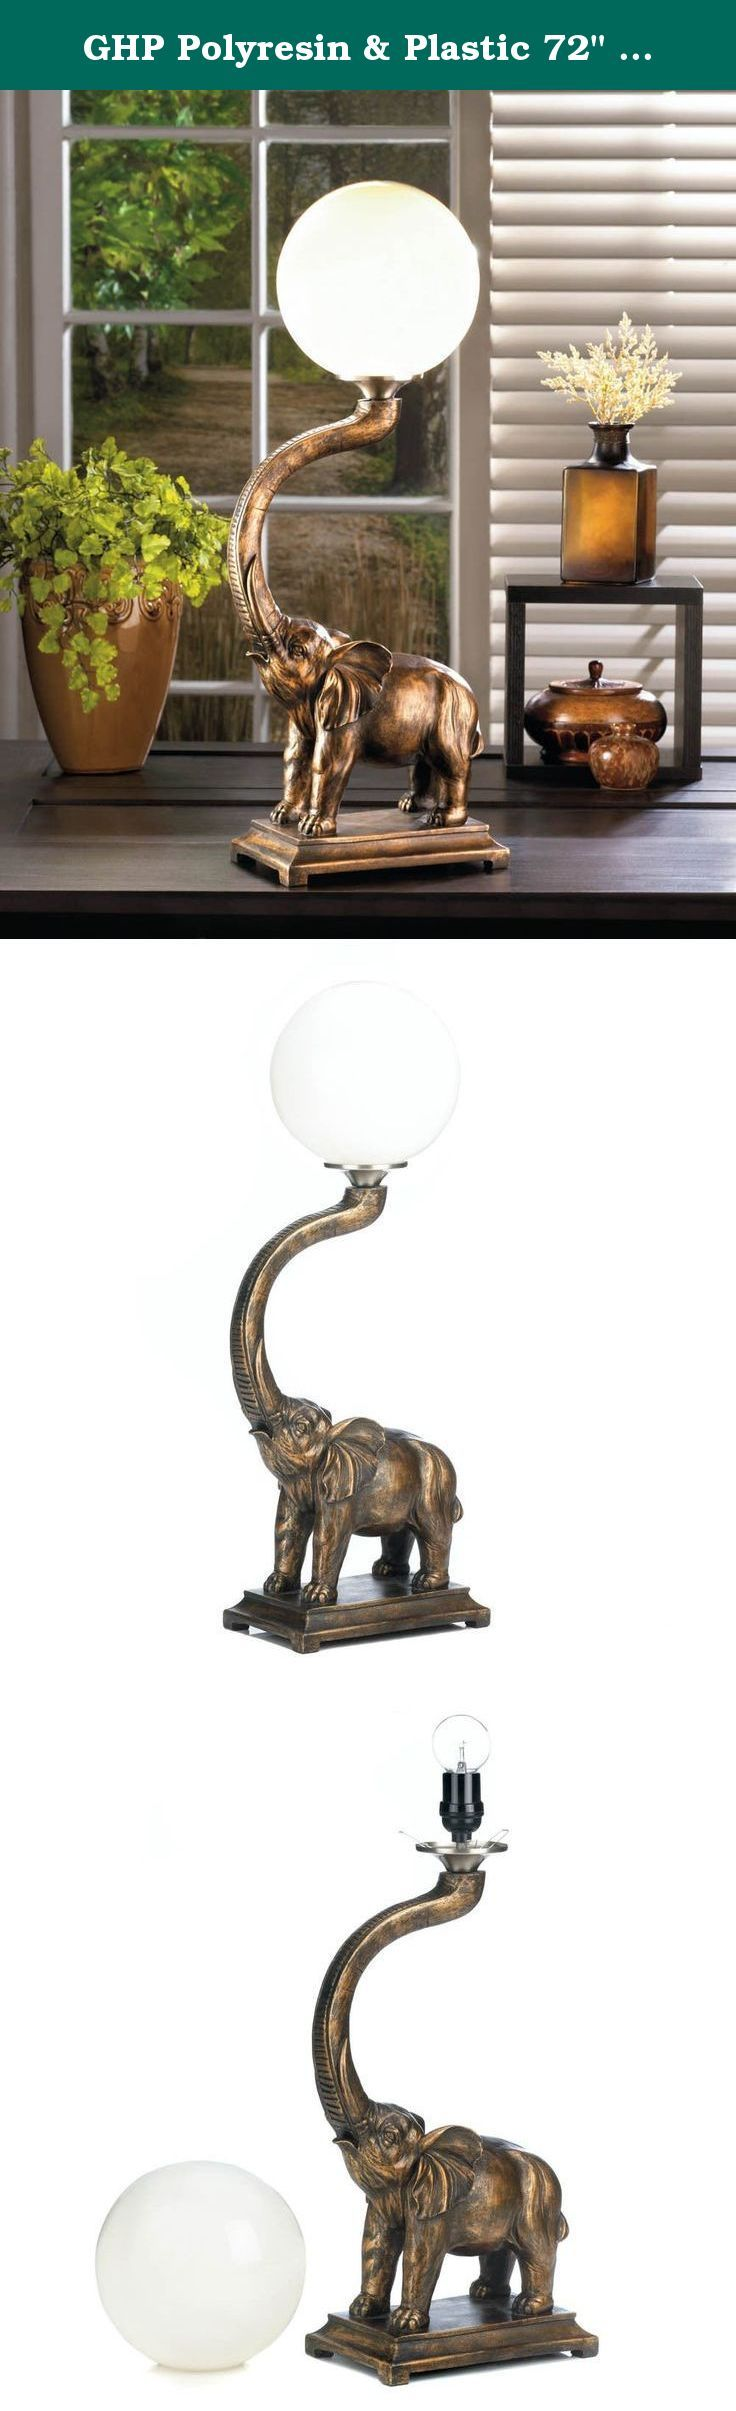 "GHP Polyresin & Plastic 72"" Power Cord Trumpeting Elephant Globe Lamp. Features: This trumpeting elephant will add charm to your décor while illuminating your living space. the polyresin base features a mighty elephant trumpeting with a white globe light balancing on the end of his trunk. Item weight: 6.6 lbs. Polyresin and plastic. UL recognized. 8 1/2"" x 5"" x 24 1/2"" high; 72"" long power cord. 15W Type A light bulb not included."